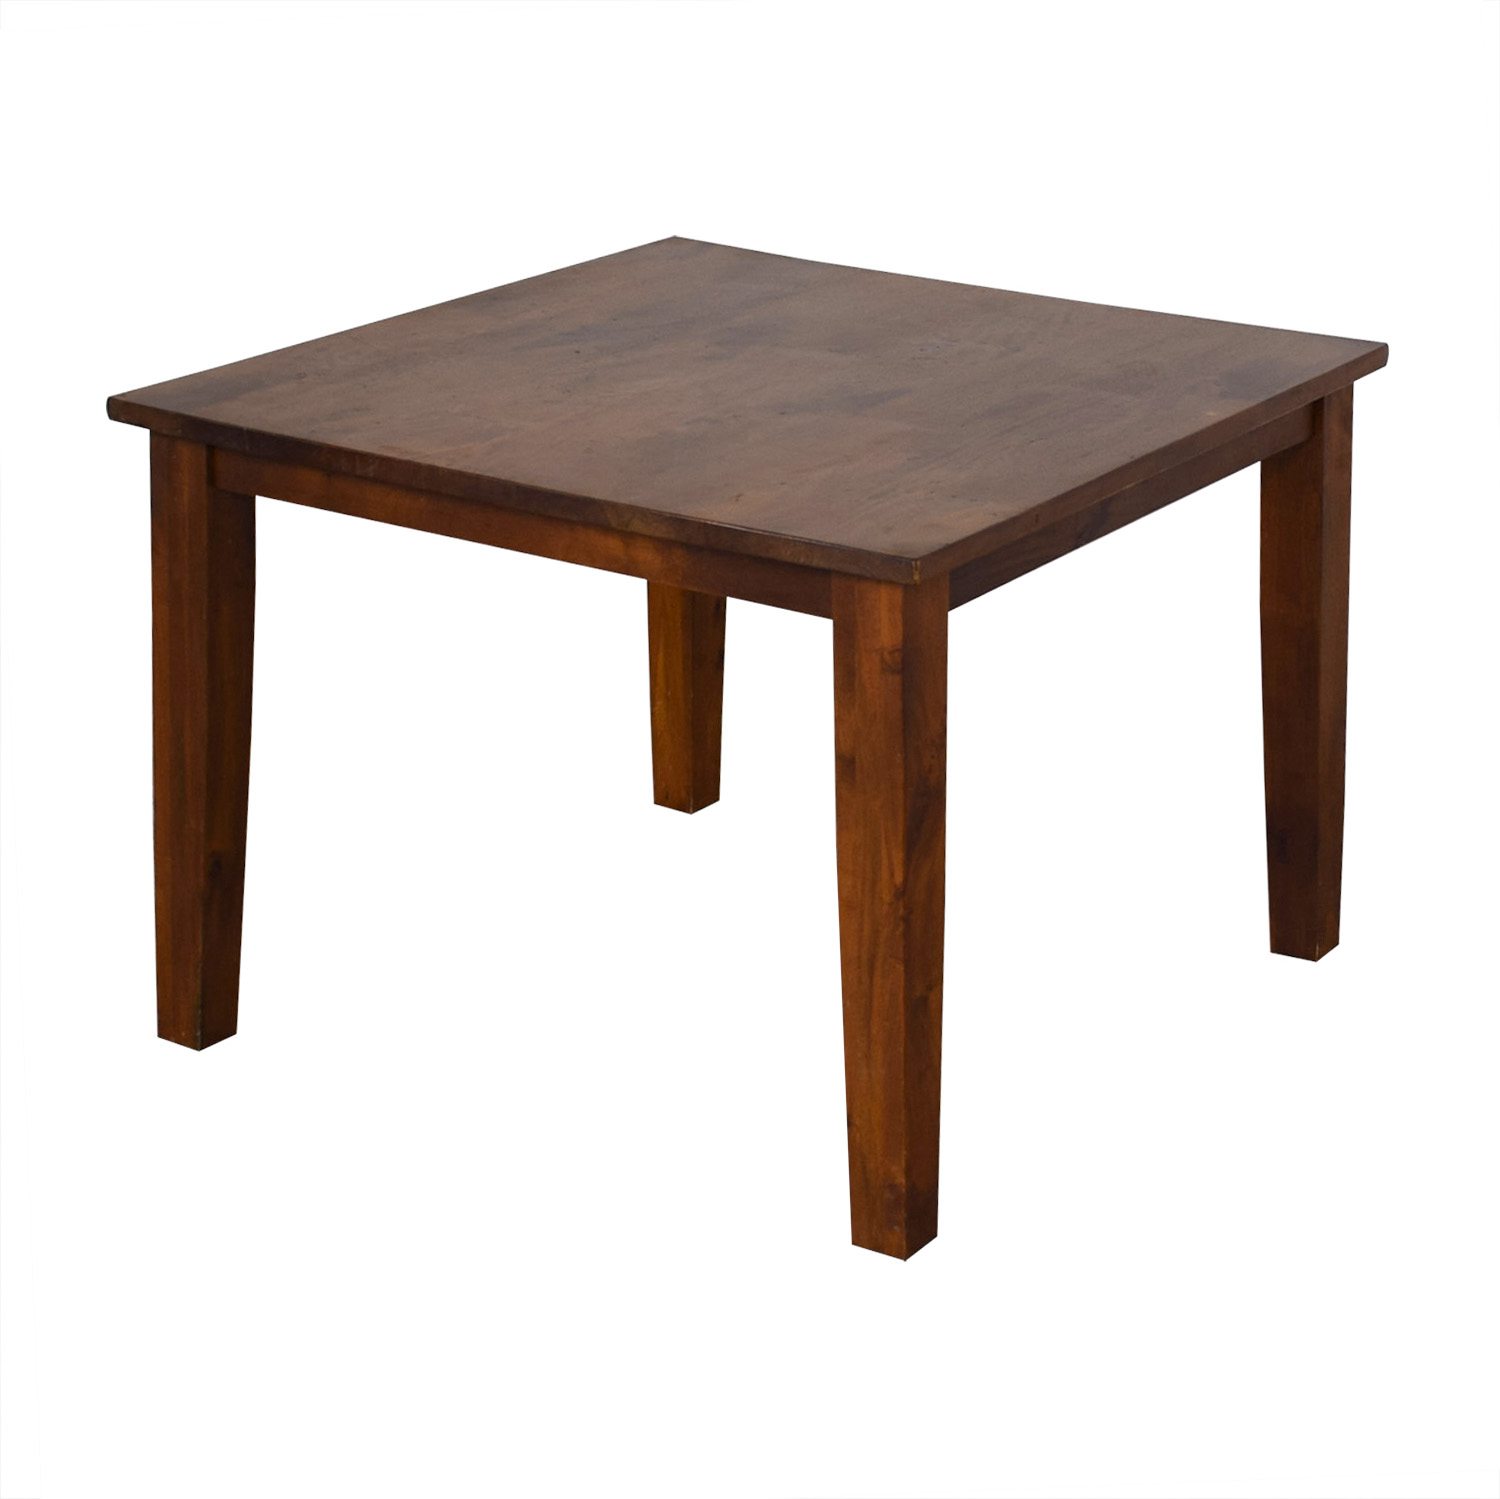 Crate & Barrel Crate & Barrel Dining Table for sale